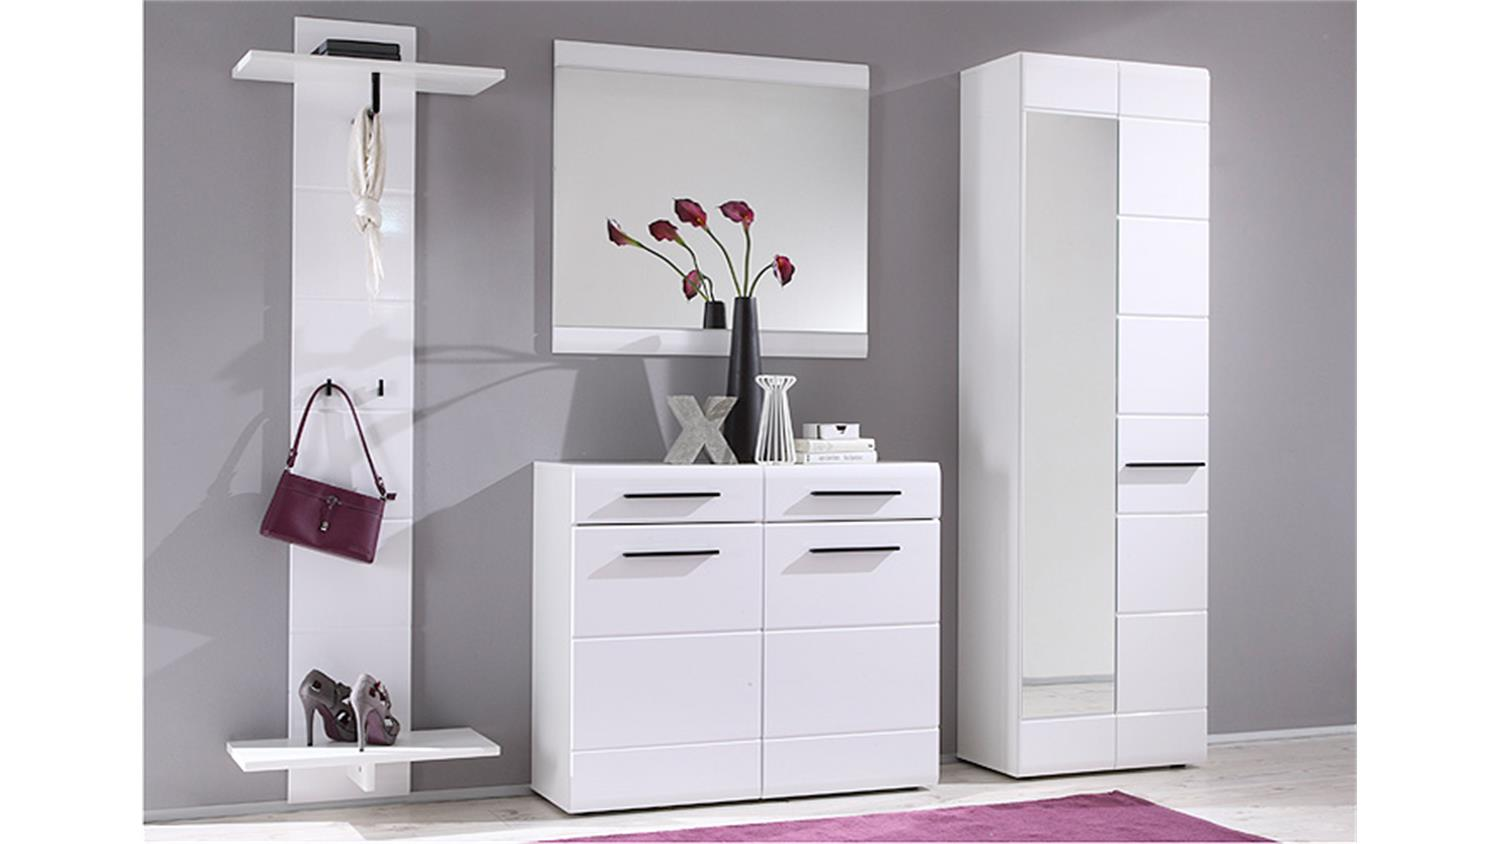 garderobenpaneel derby wandgarderobe paneel in wei dekor. Black Bedroom Furniture Sets. Home Design Ideas